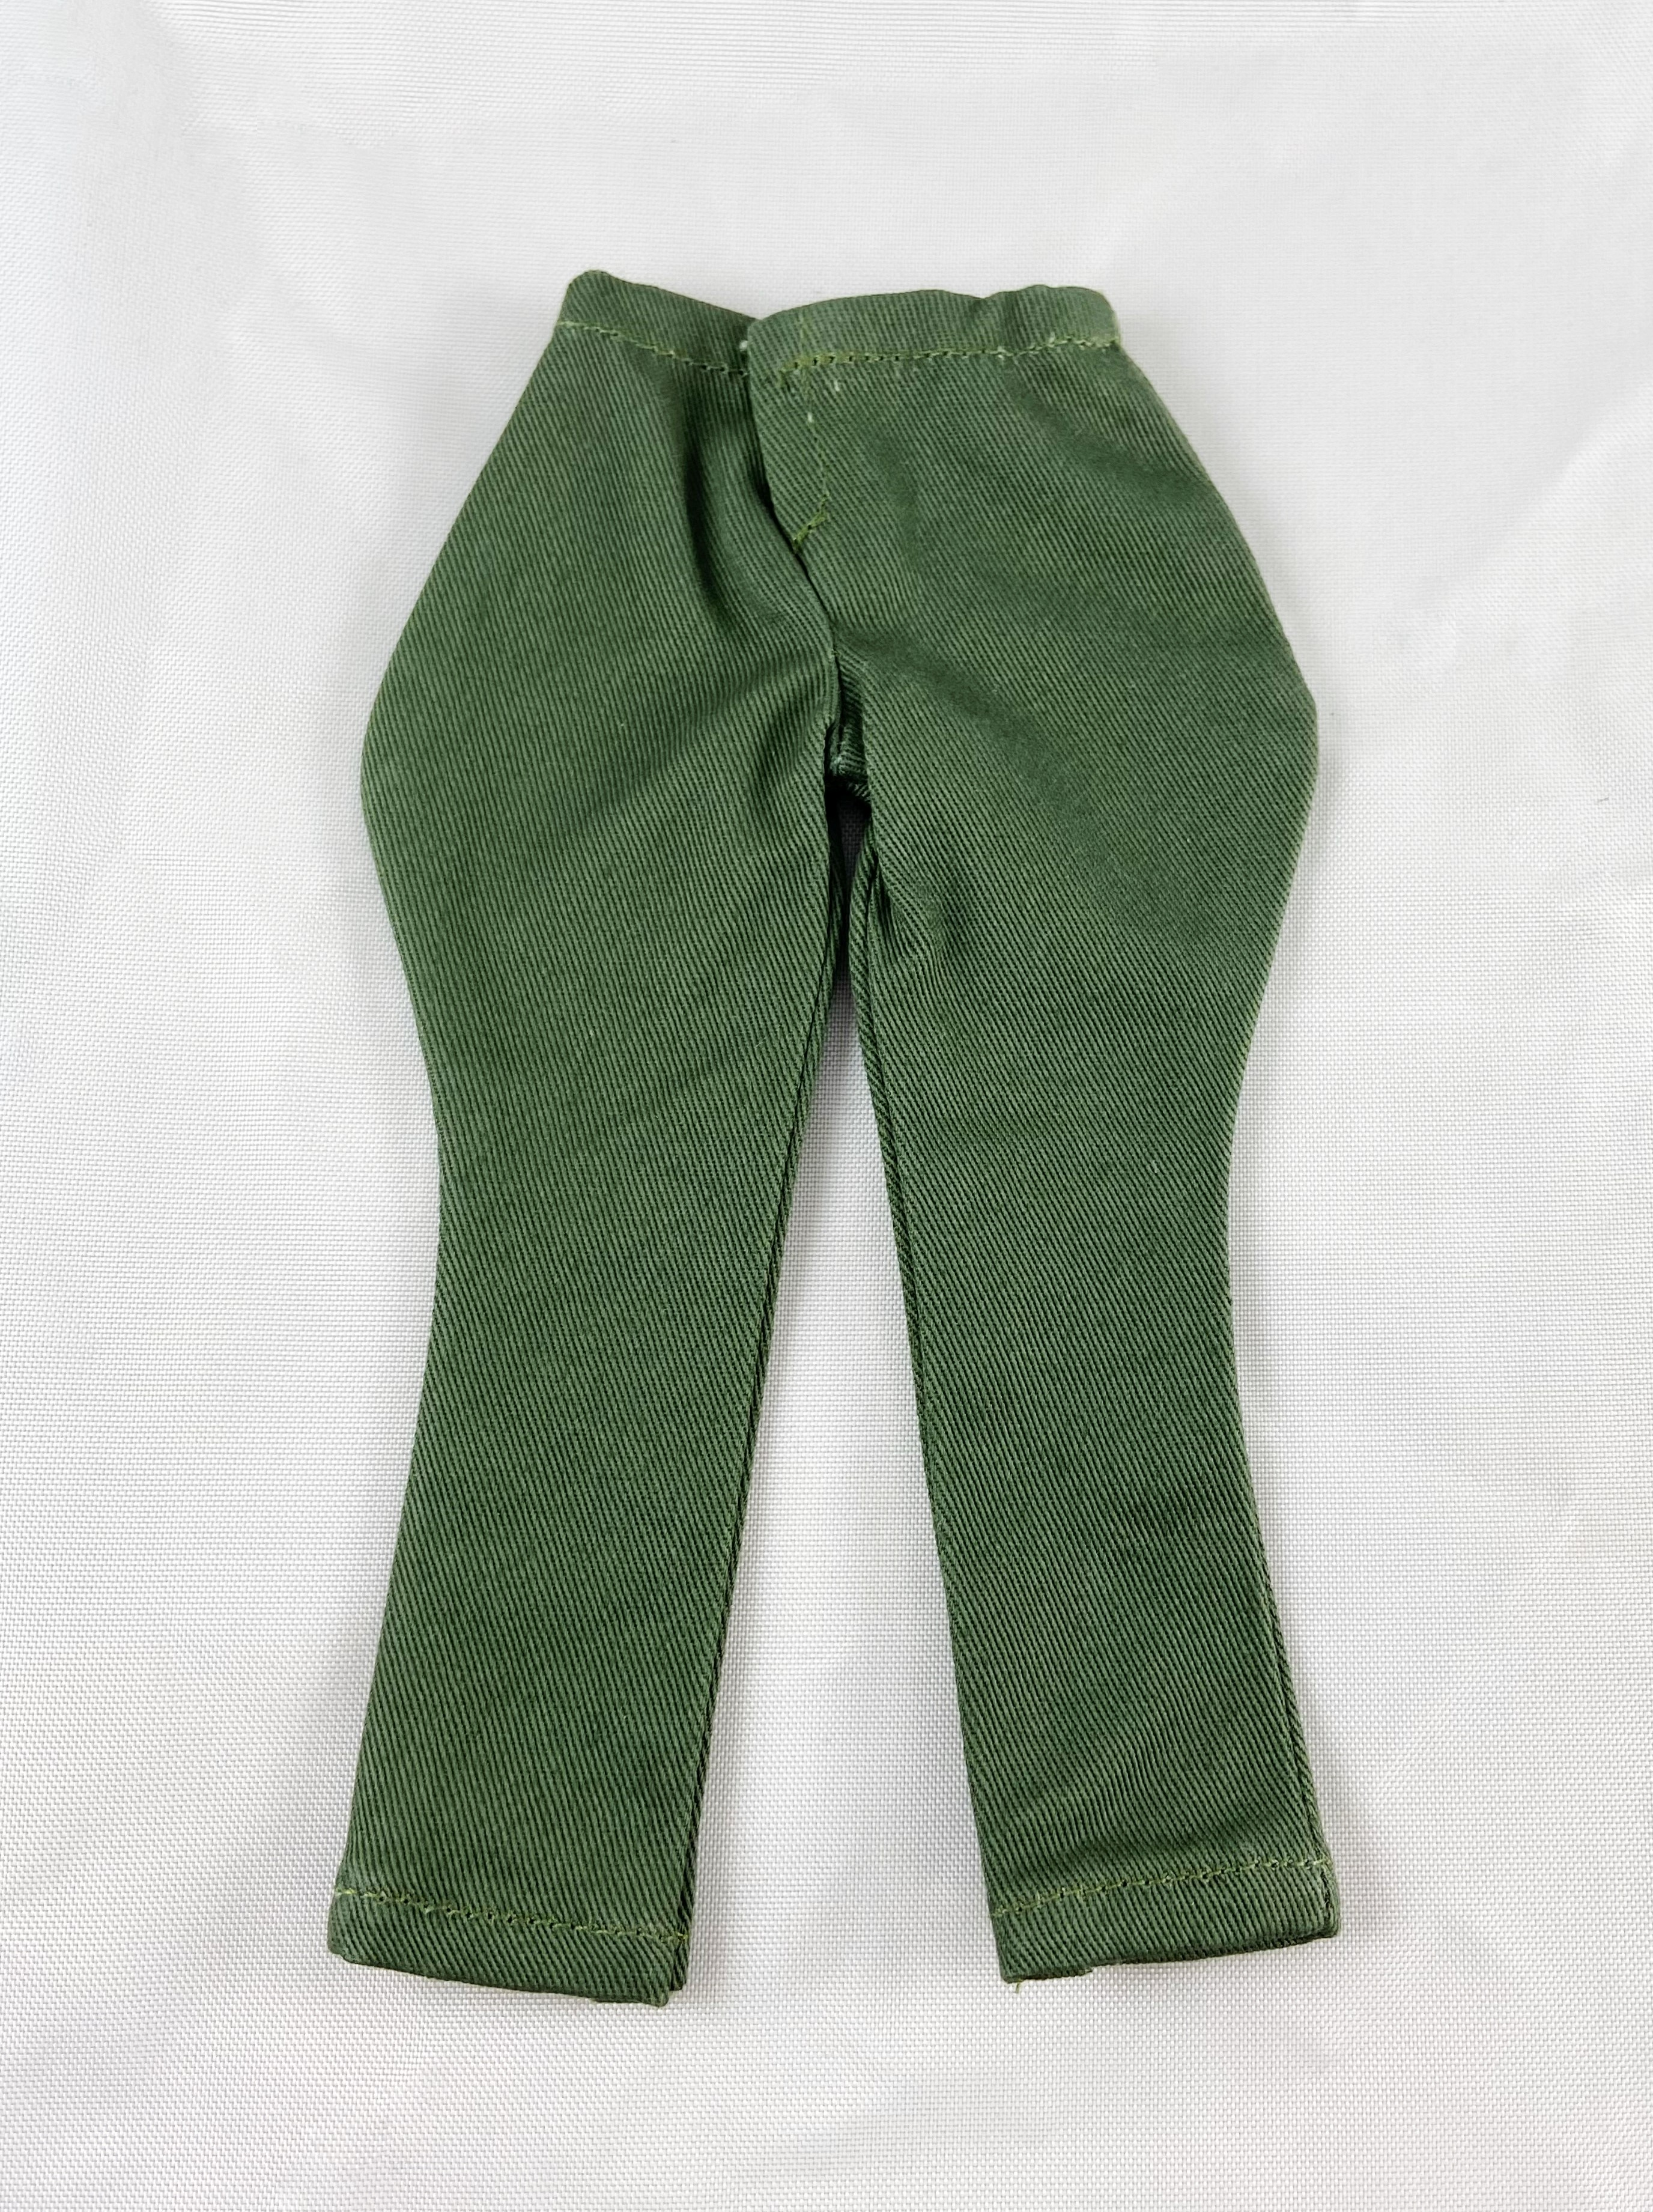 Jodhpur Pants (OD Green)